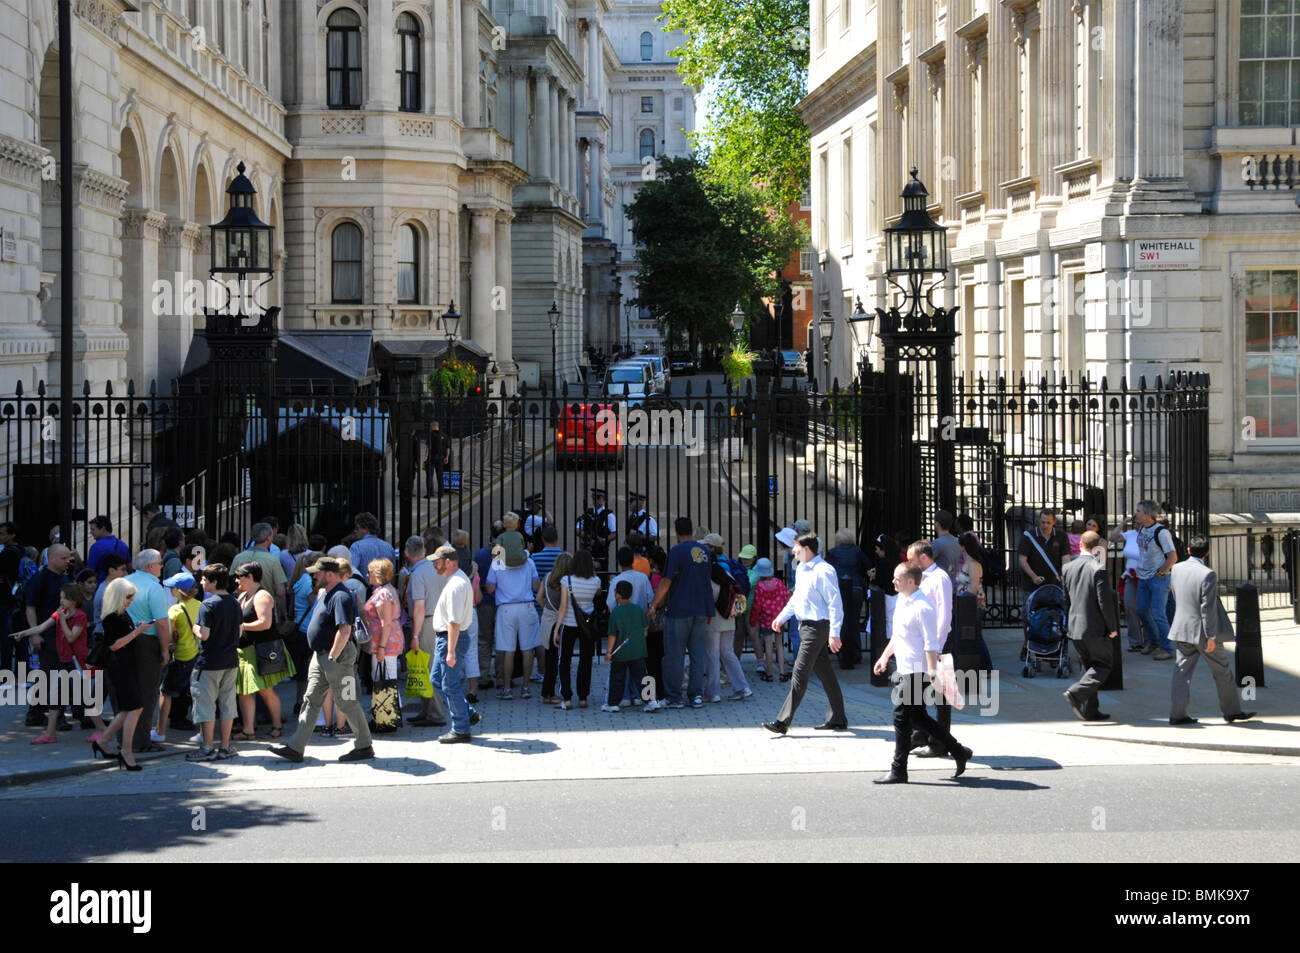 Tourists on the Whitehall side of Downing Street in front of steel security gates controlled by Metropolitan police Stock Photo